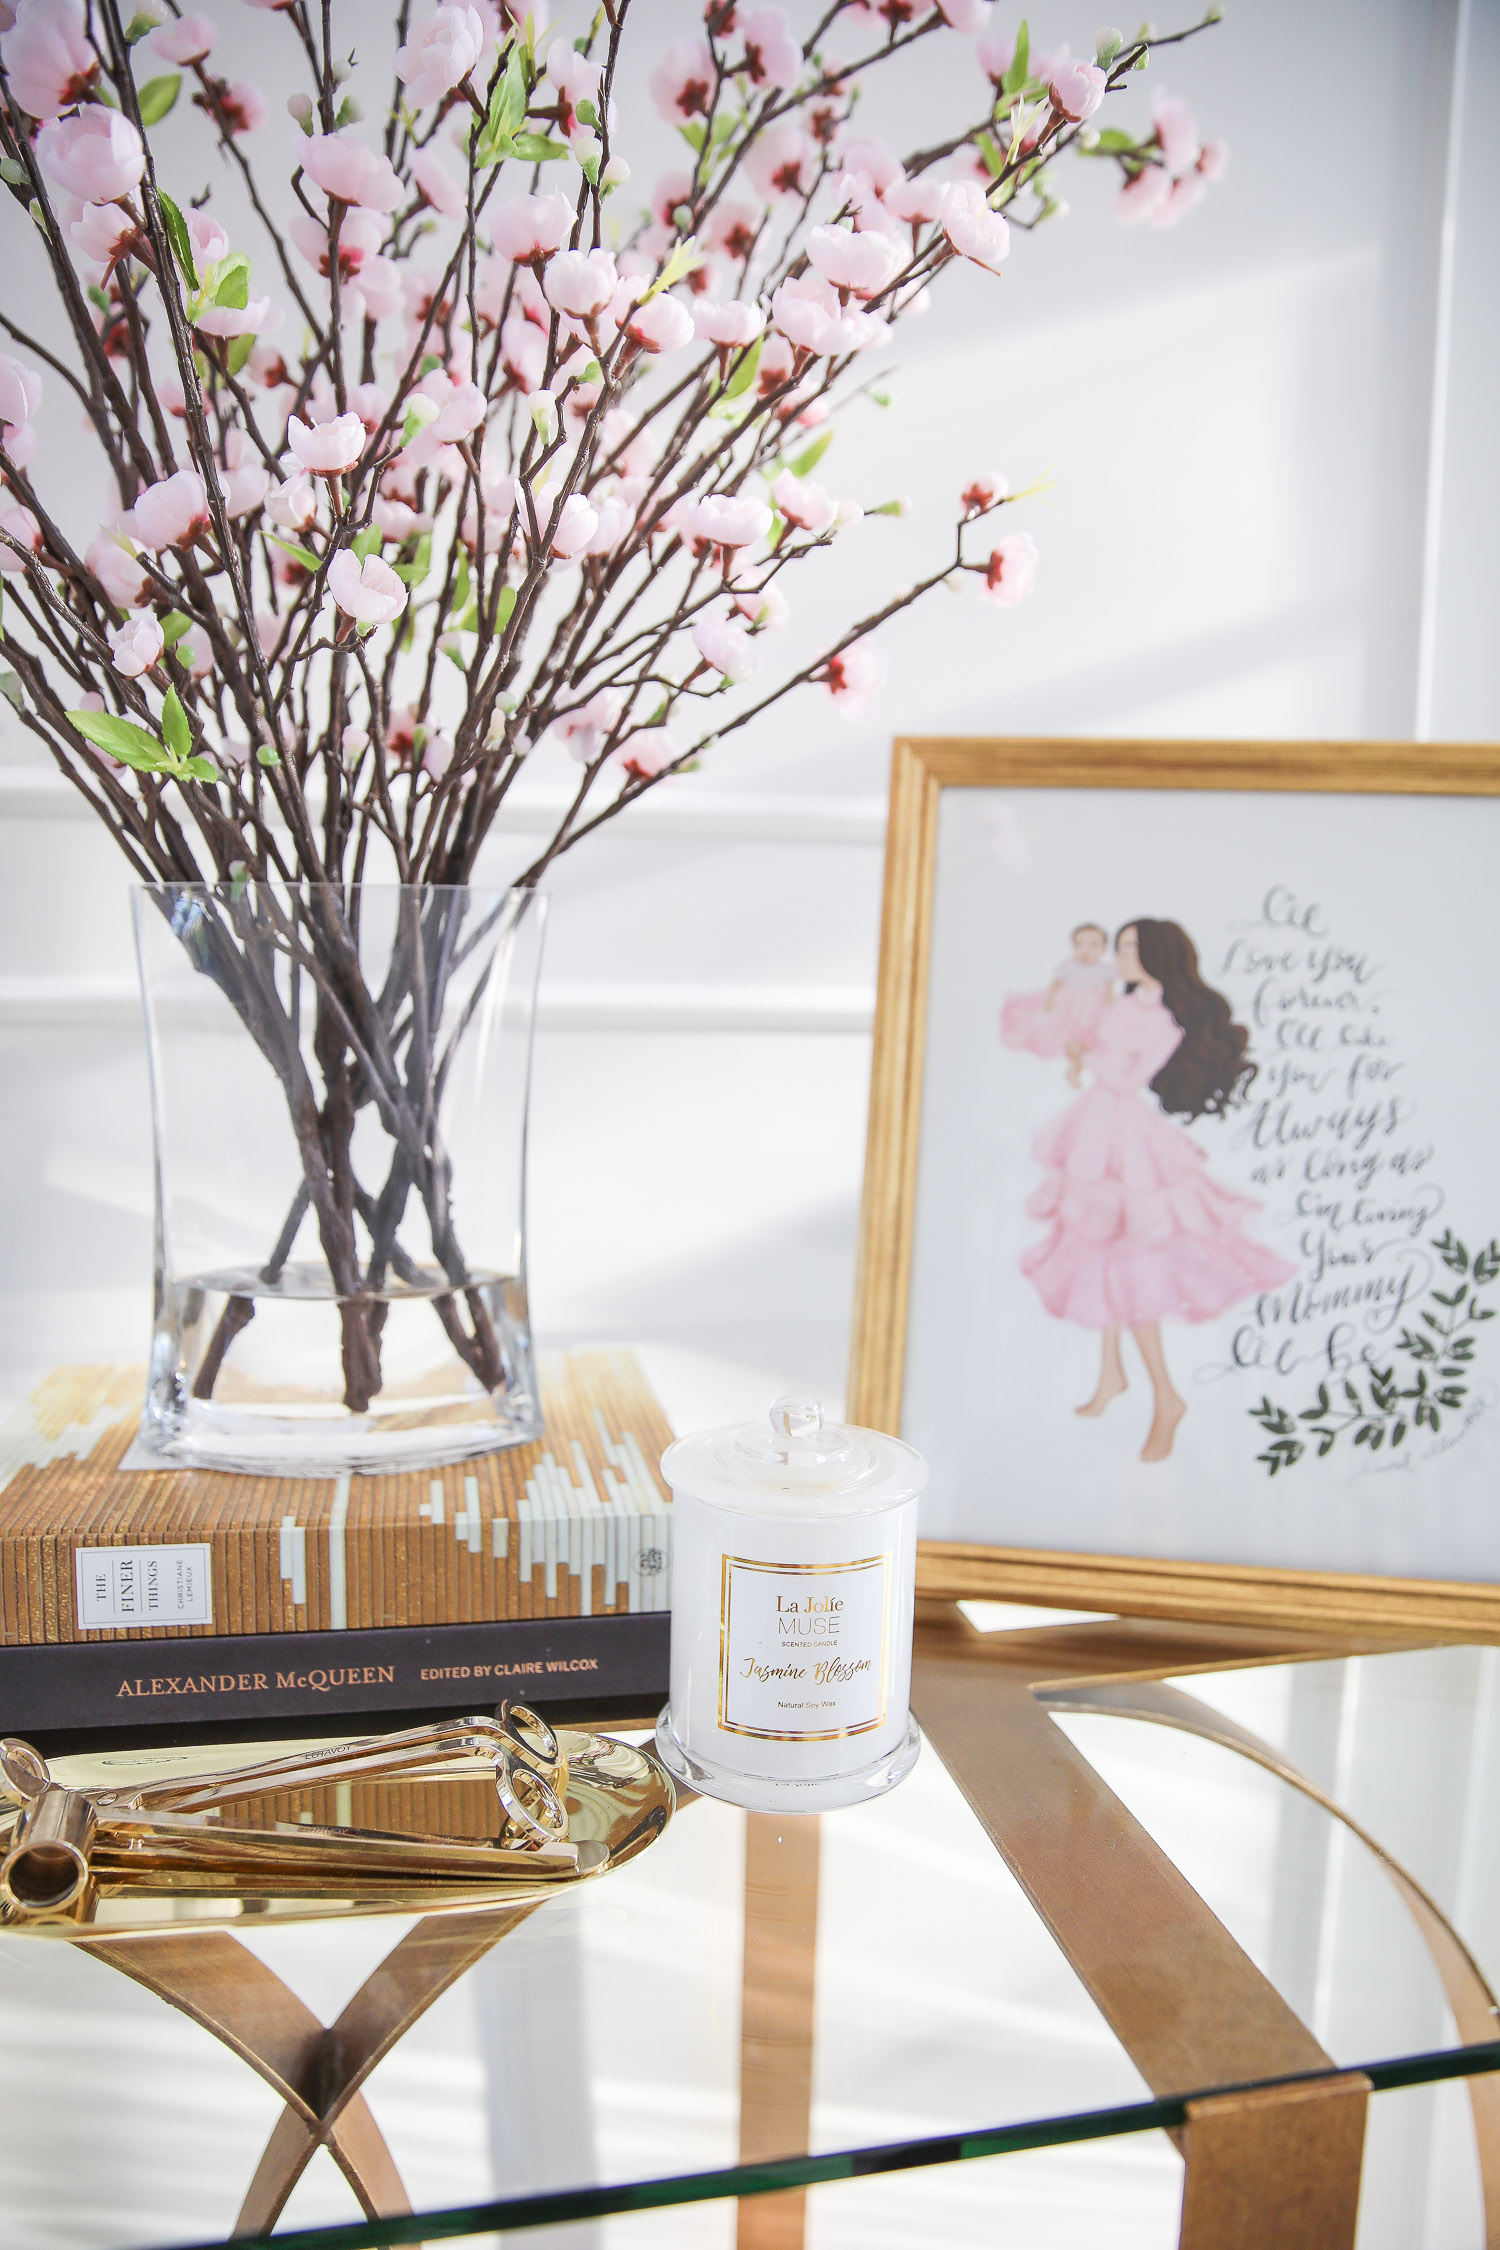 amazon must haves summer 2020, amazon home decor blog post, amazon luxury must haves, two story closet pinterest, emily gemma, closet organization | Amazon Favorites by popular US life and style blog, The Sweetest Thing: image of a Alexander McQueen coffee table book, Amazon The Finer Things book, Amazon La Jolie Muse Jasmine Scented candle, Amazon Lawrence Frames 11x14 Sutter Burnished Gold Picture Frame, and LUTAVOY Candle Accessory Set Candle Wick Trimmer Candle Wick Dipper Candle Snuffer Storage Tray 4 Packs Candle Care Kit Gift.